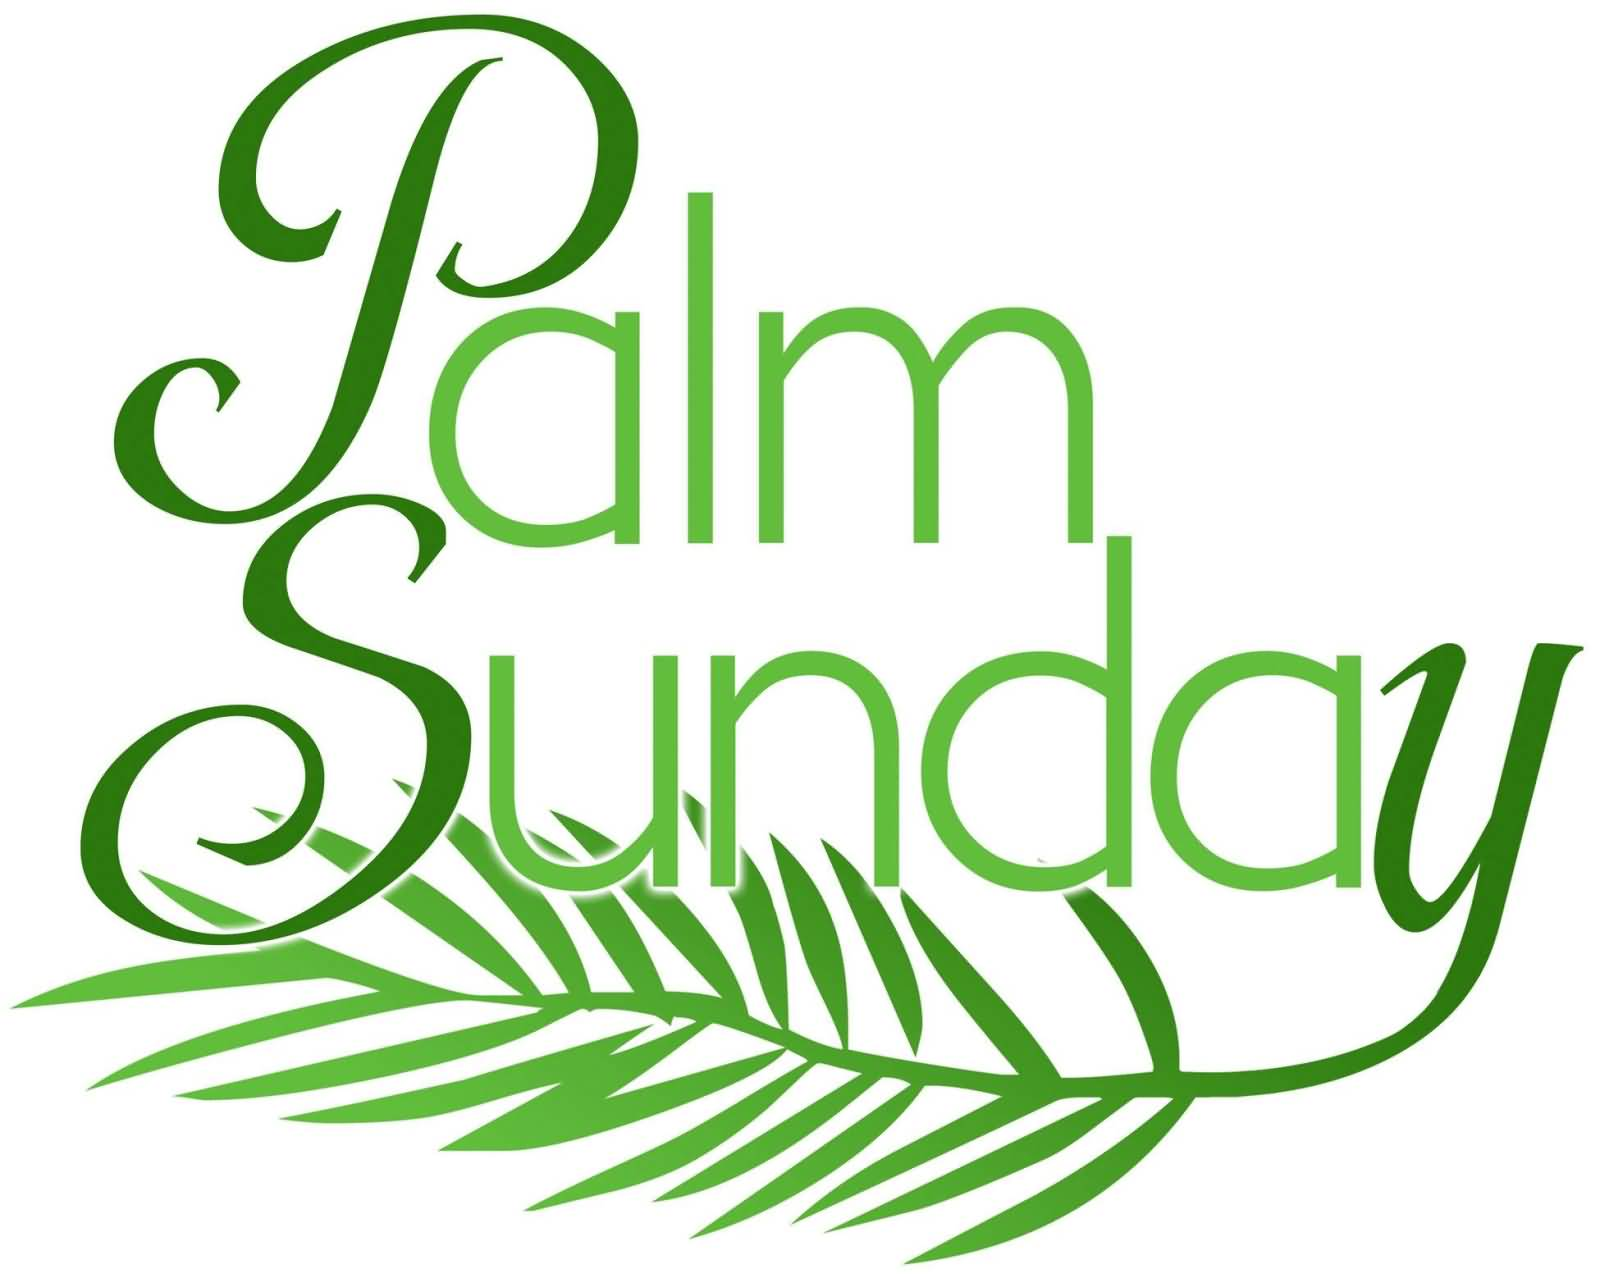 Wish You Happy Palm Sunday